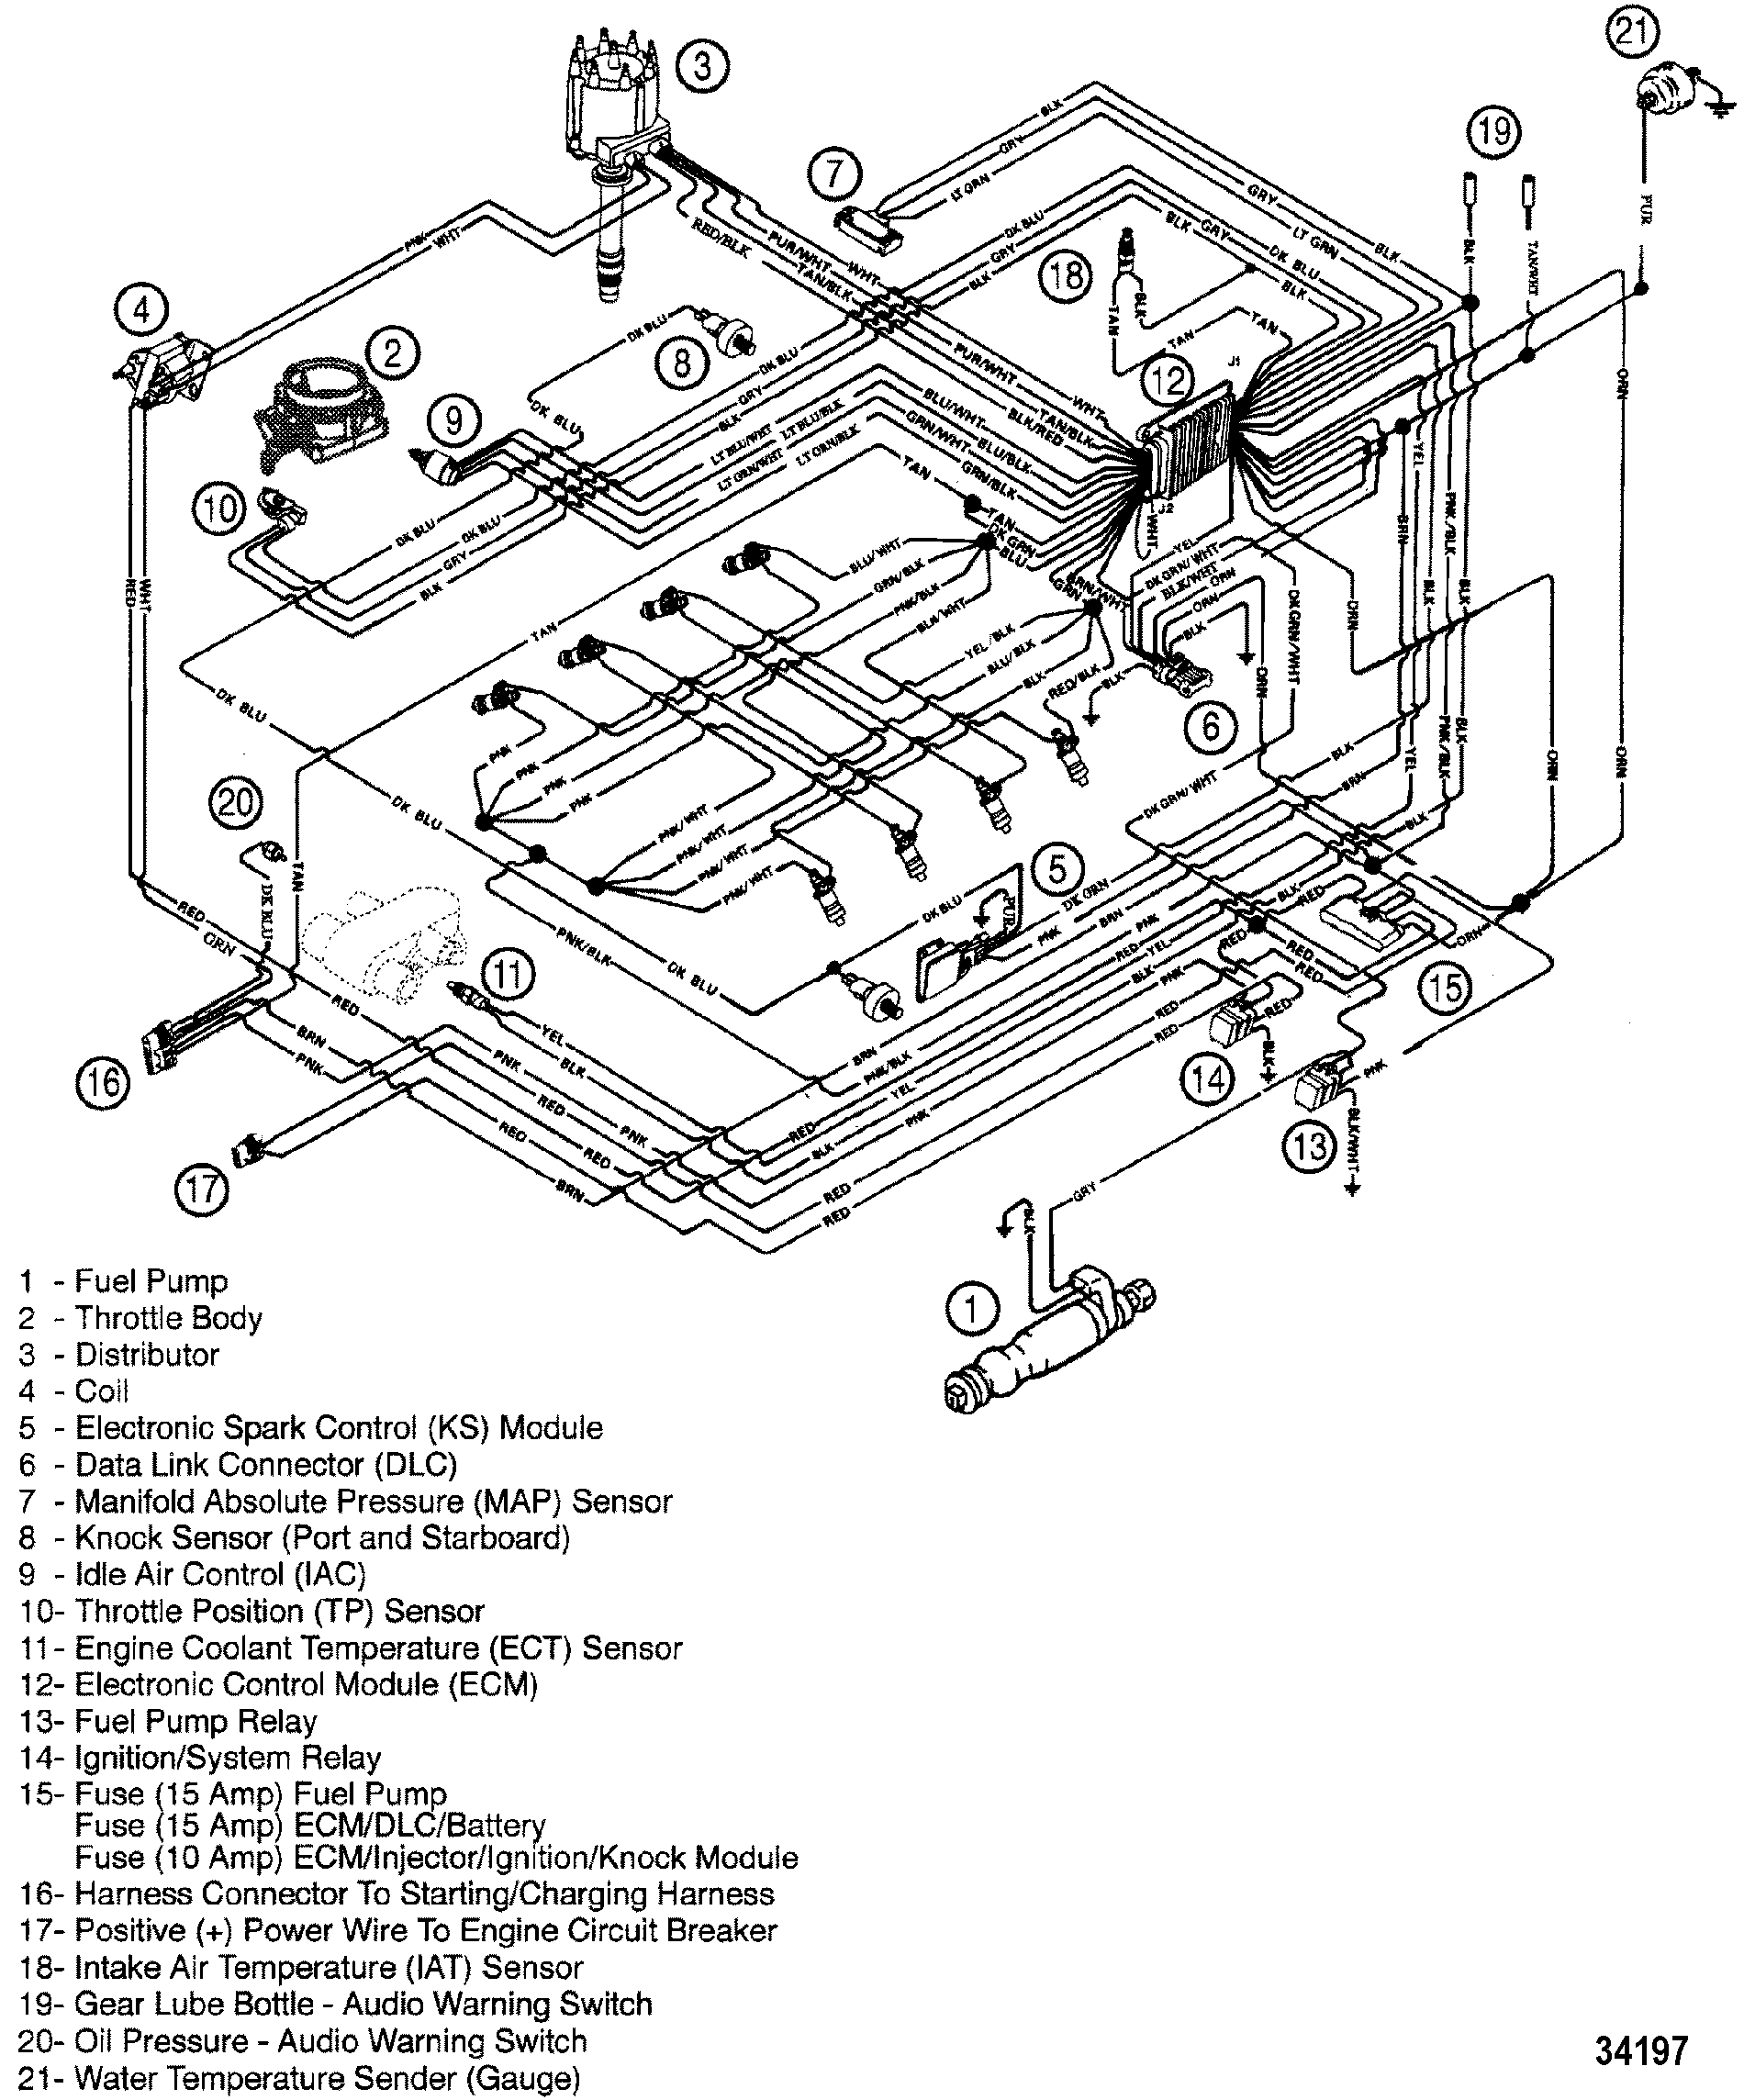 Mercruiser Trim System Wiring Diagram Great Installation Of Electrical Diagrams 1987 350 Ignition Simple Rh 73 Mara Cujas De Power Schematic Sensor